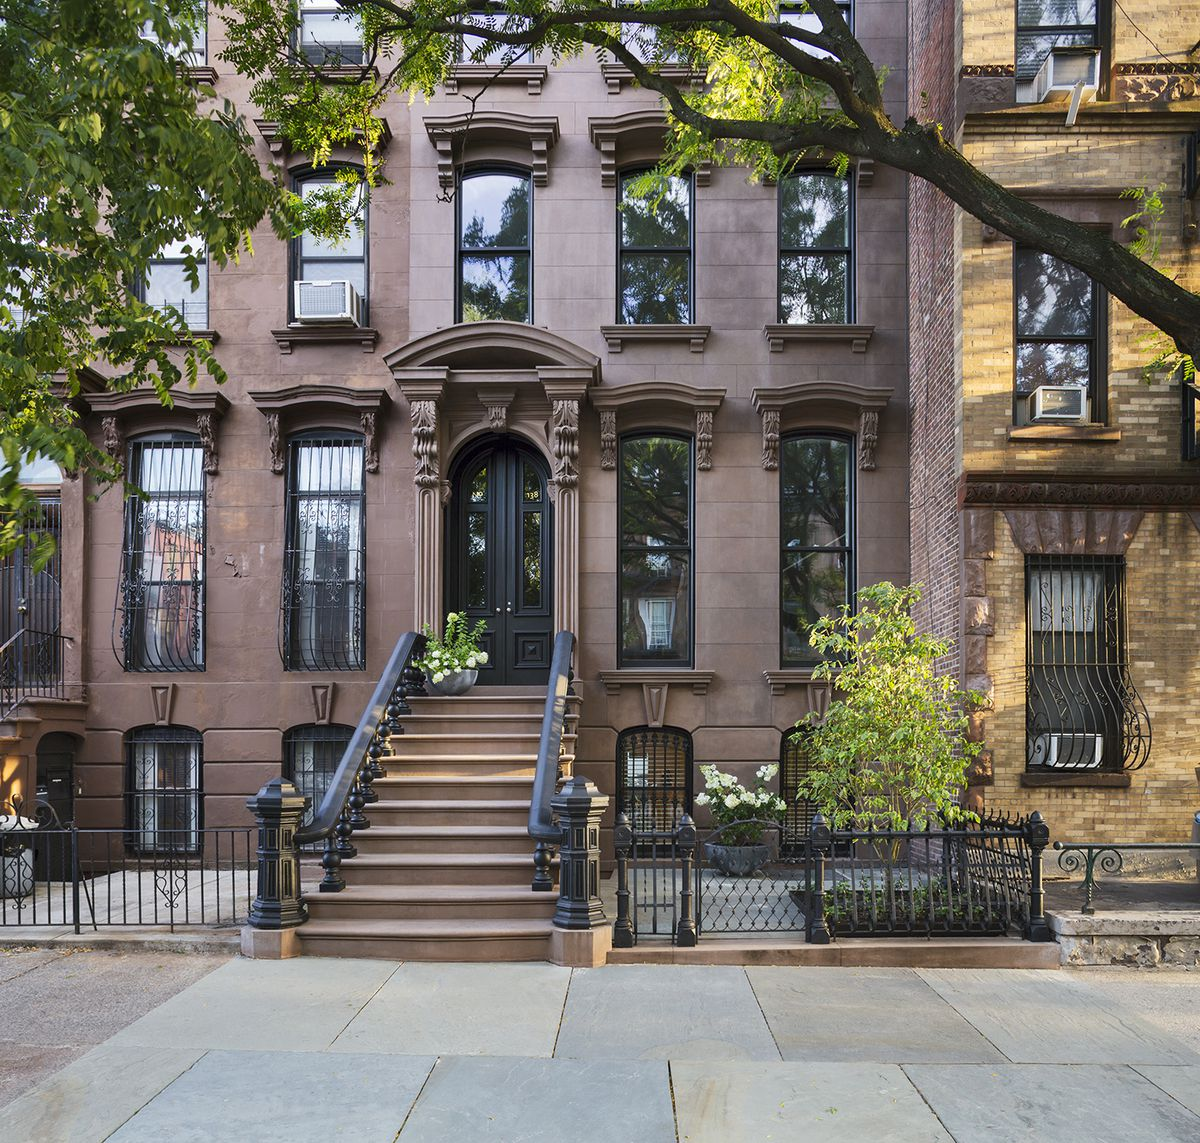 The restored brownstone exterior.